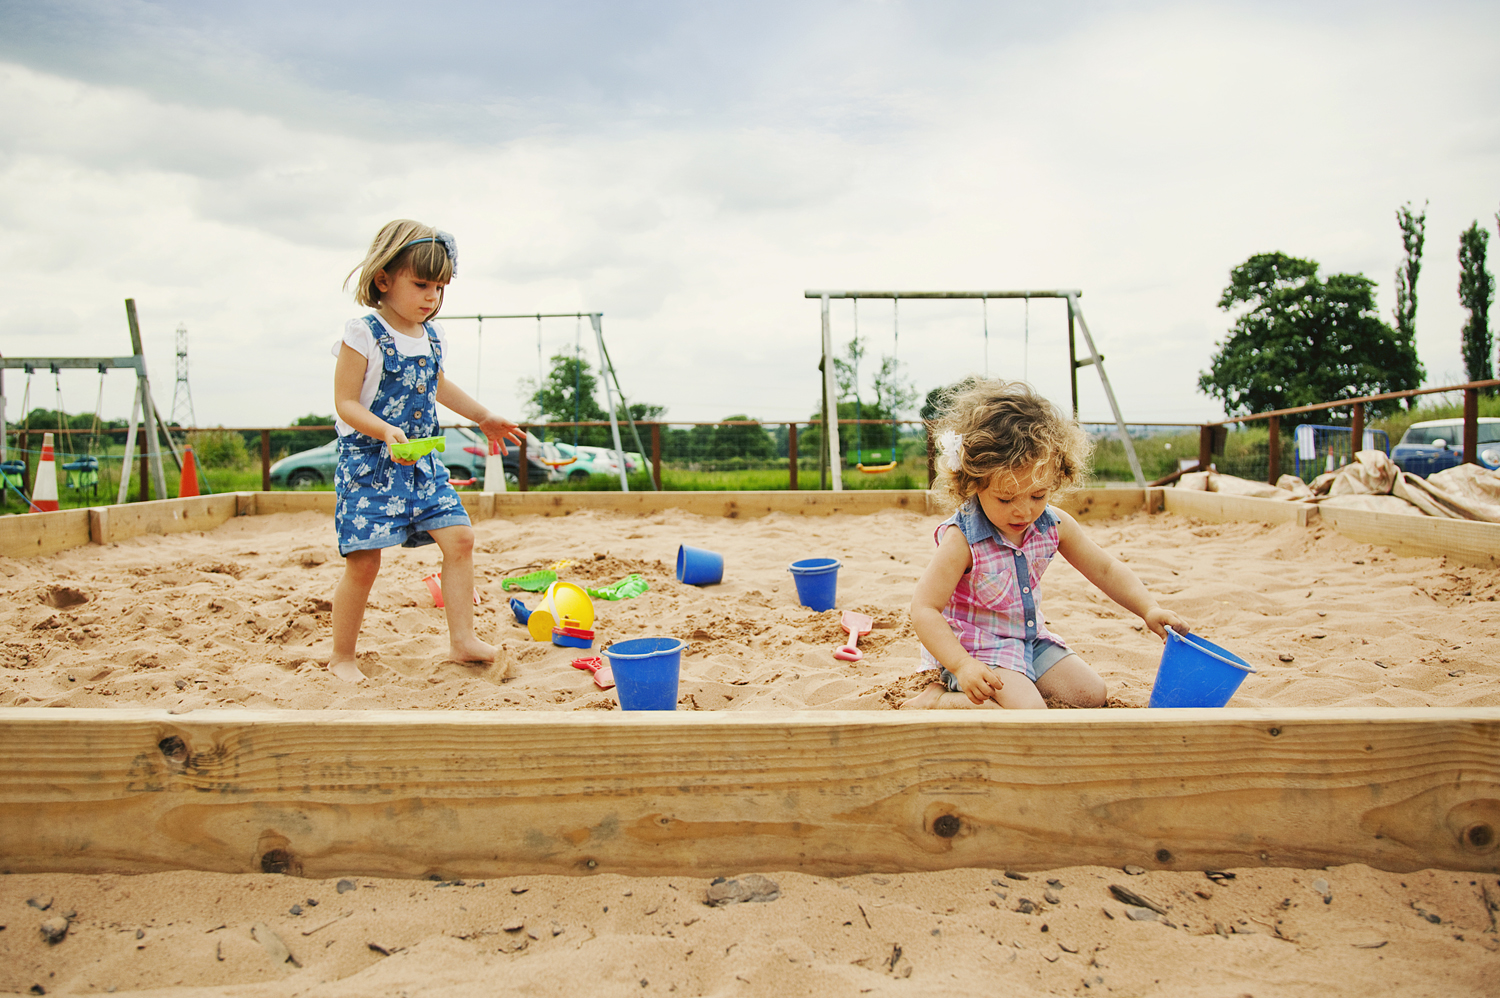 Bluebells Play Park - Sandpit